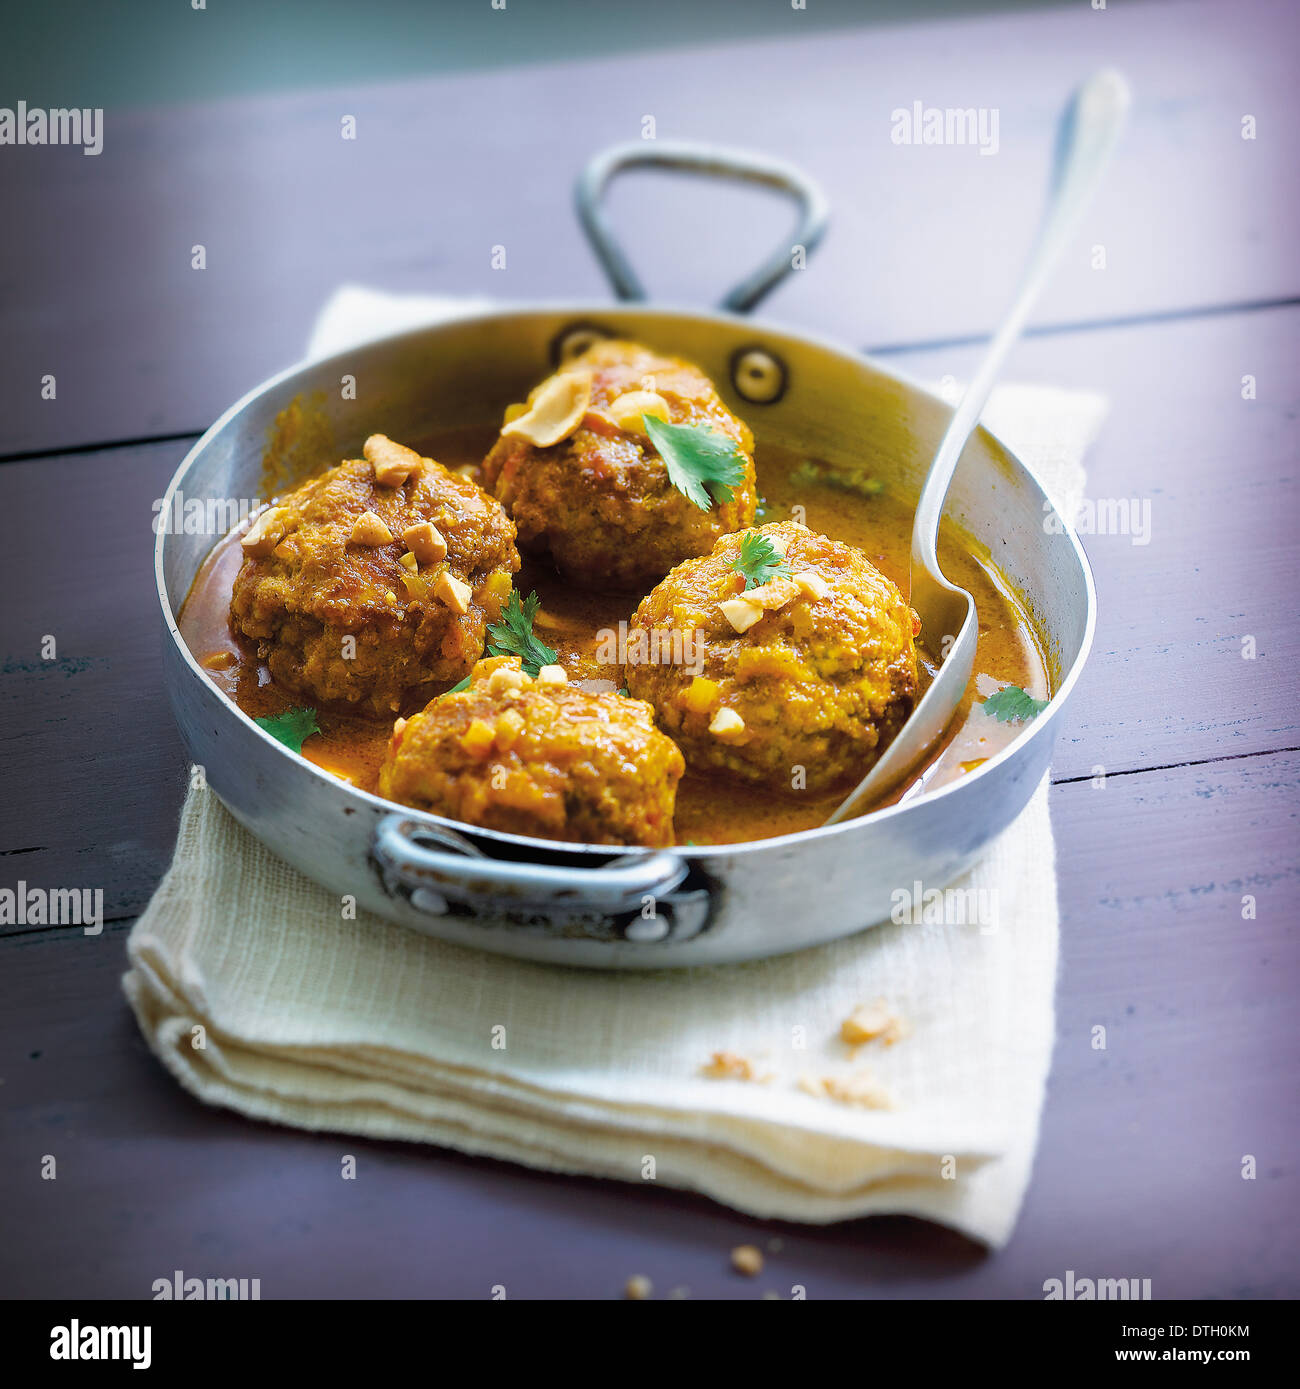 Curried pork meatballs - Stock Image